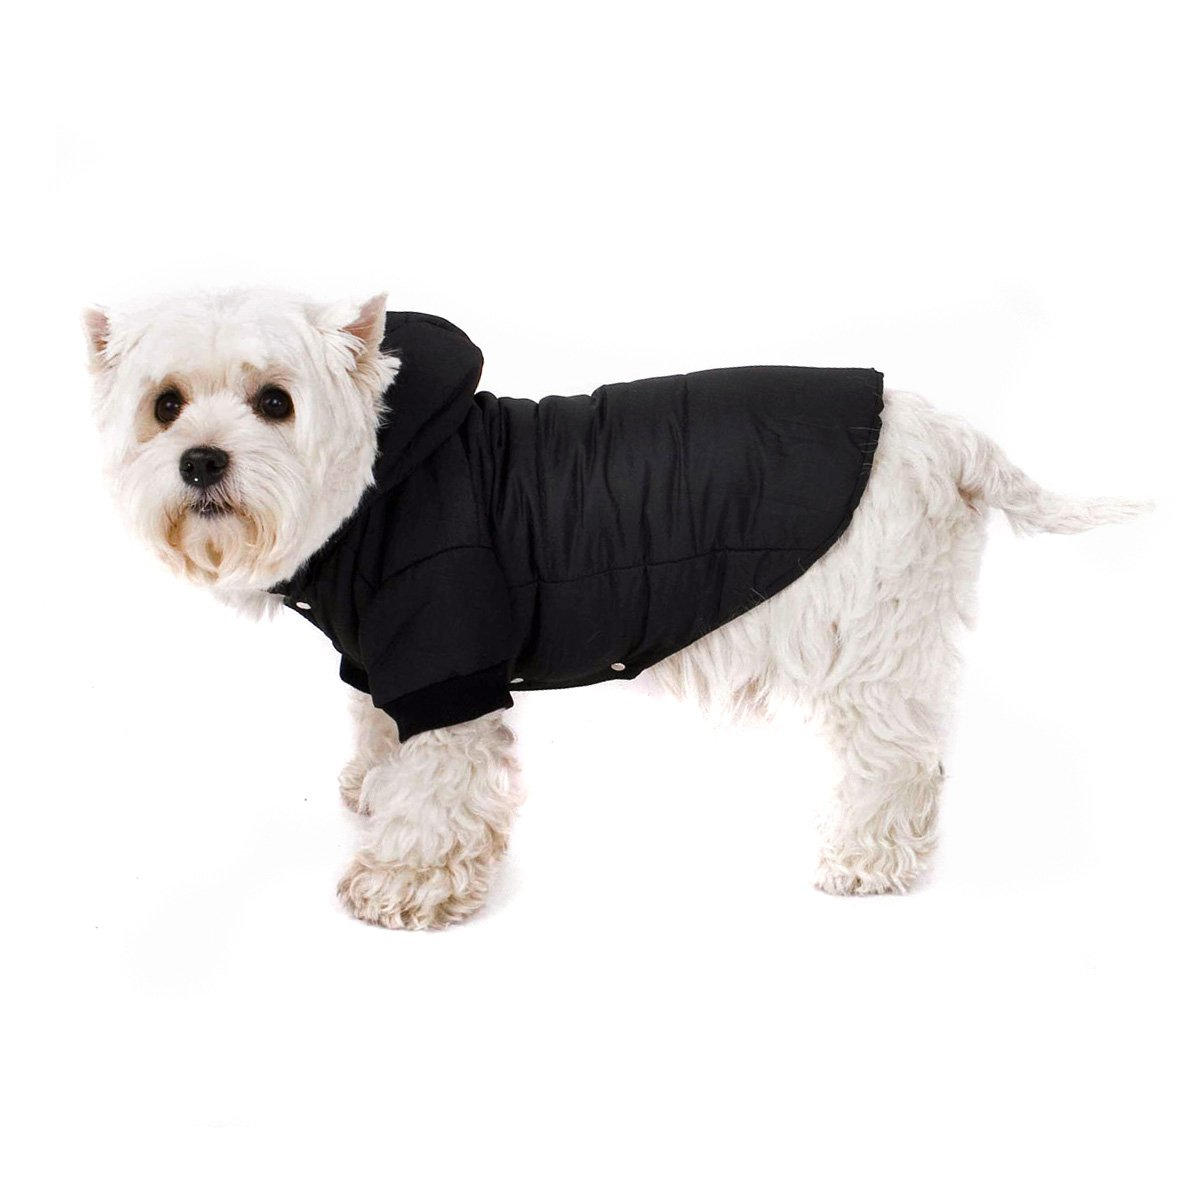 black Chic Dog Anorak for Your Dog 26cm XS Black Dog Coat with Hood